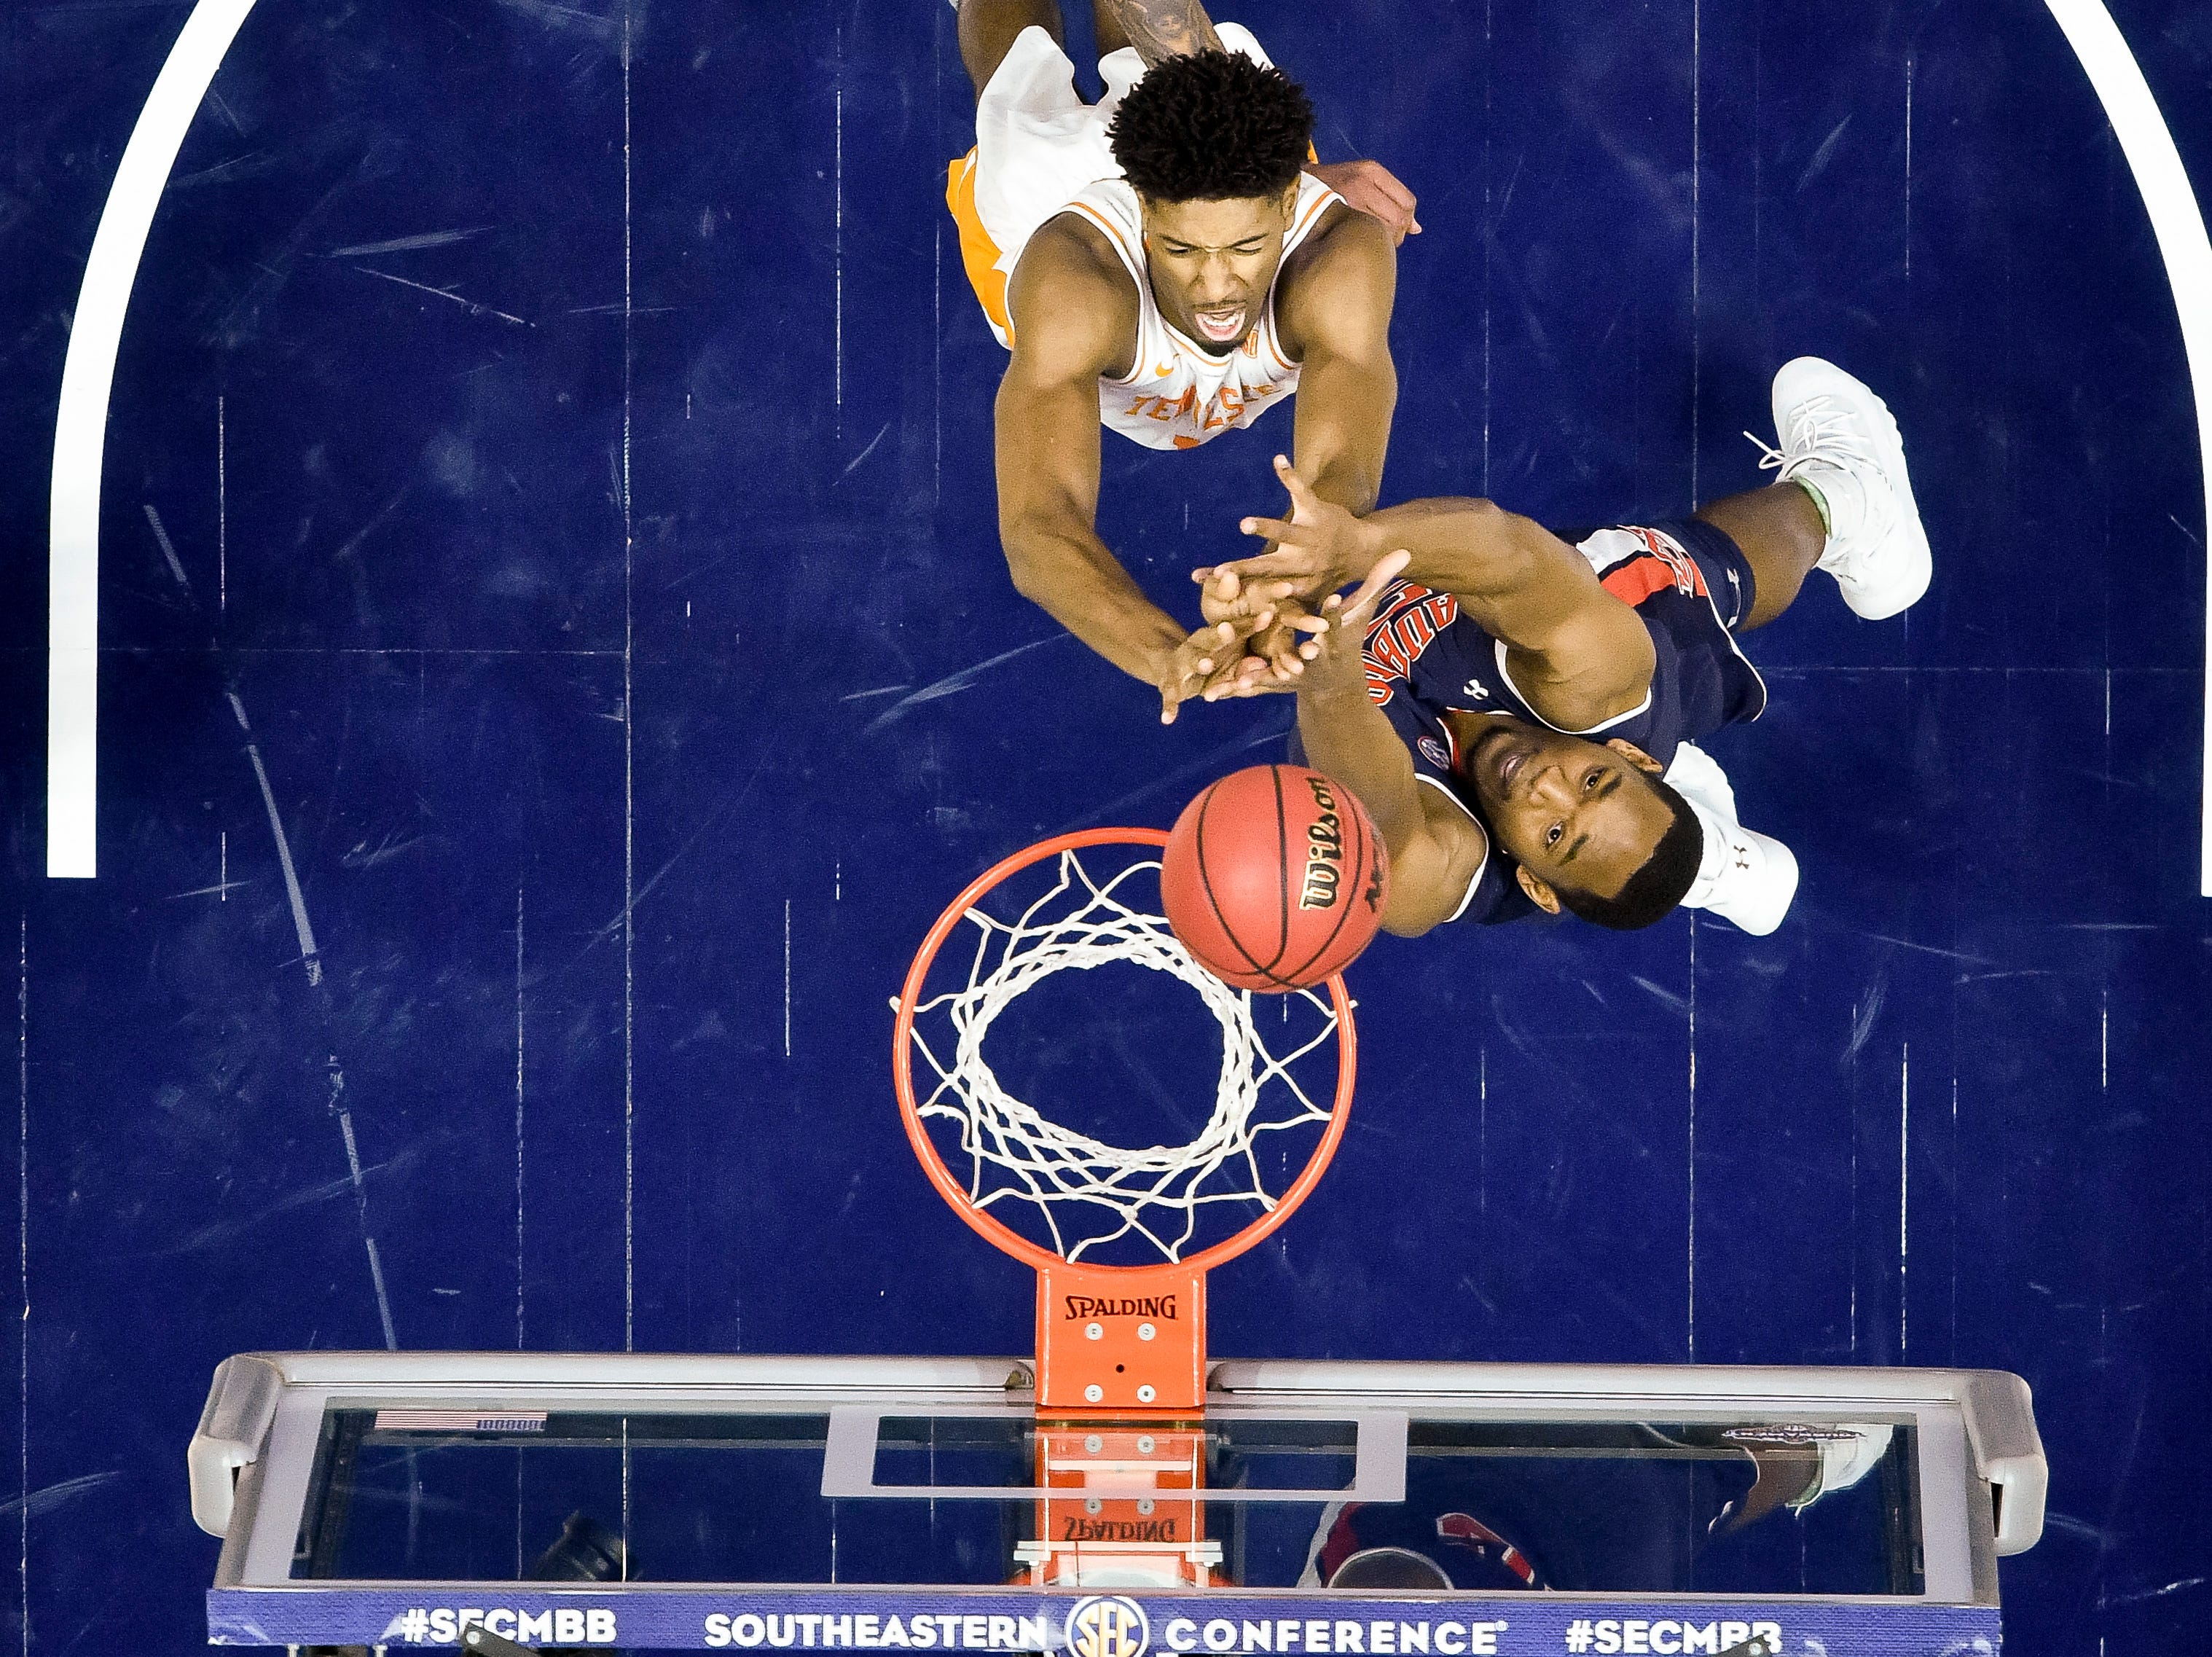 Auburn center Austin Wiley (50) defends against Tennessee forward Kyle Alexander (11) during the first half of the SEC Men's Basketball Tournament championship game at Bridgestone Arena in Nashville, Tenn., Sunday, March 17, 2019.